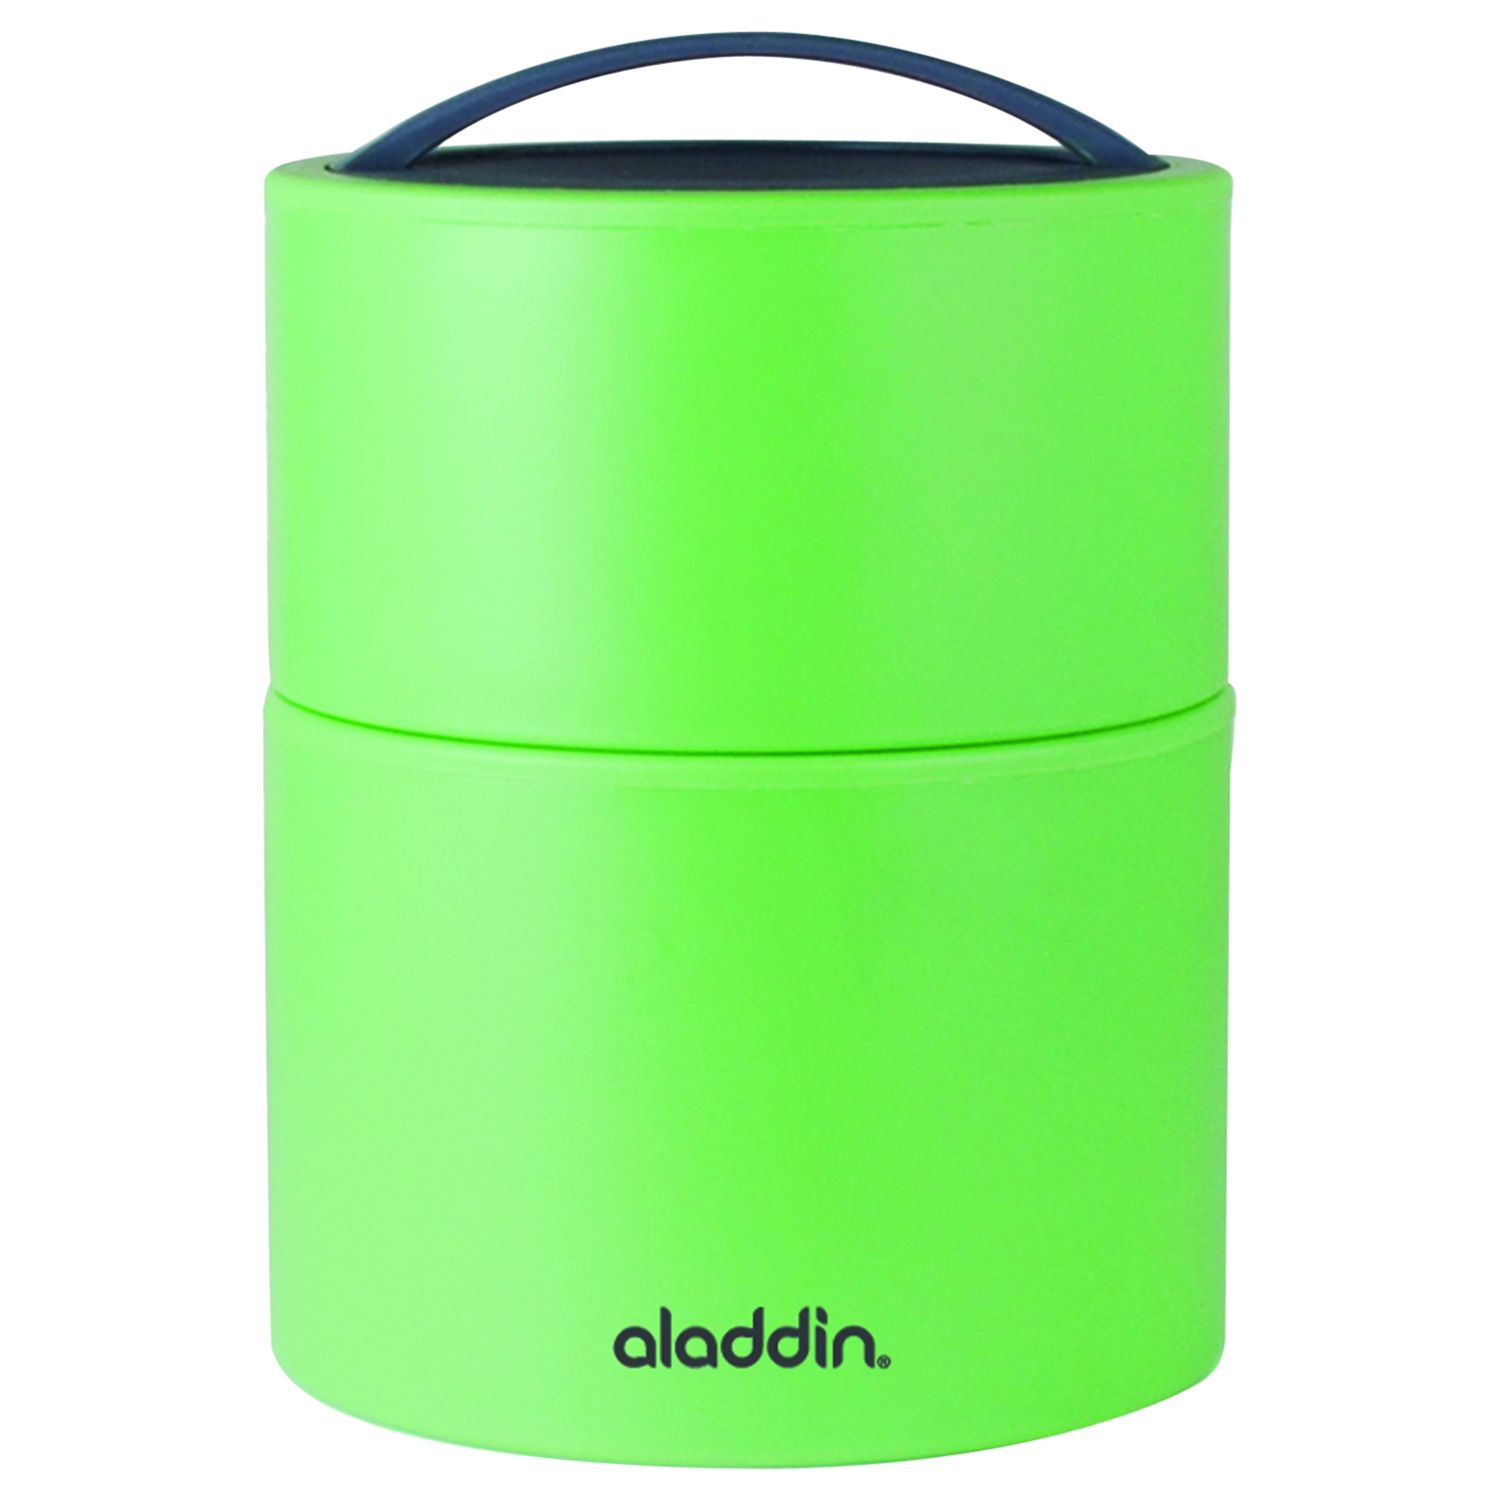 Aladdin Bento Food Flask, 950ml, Green